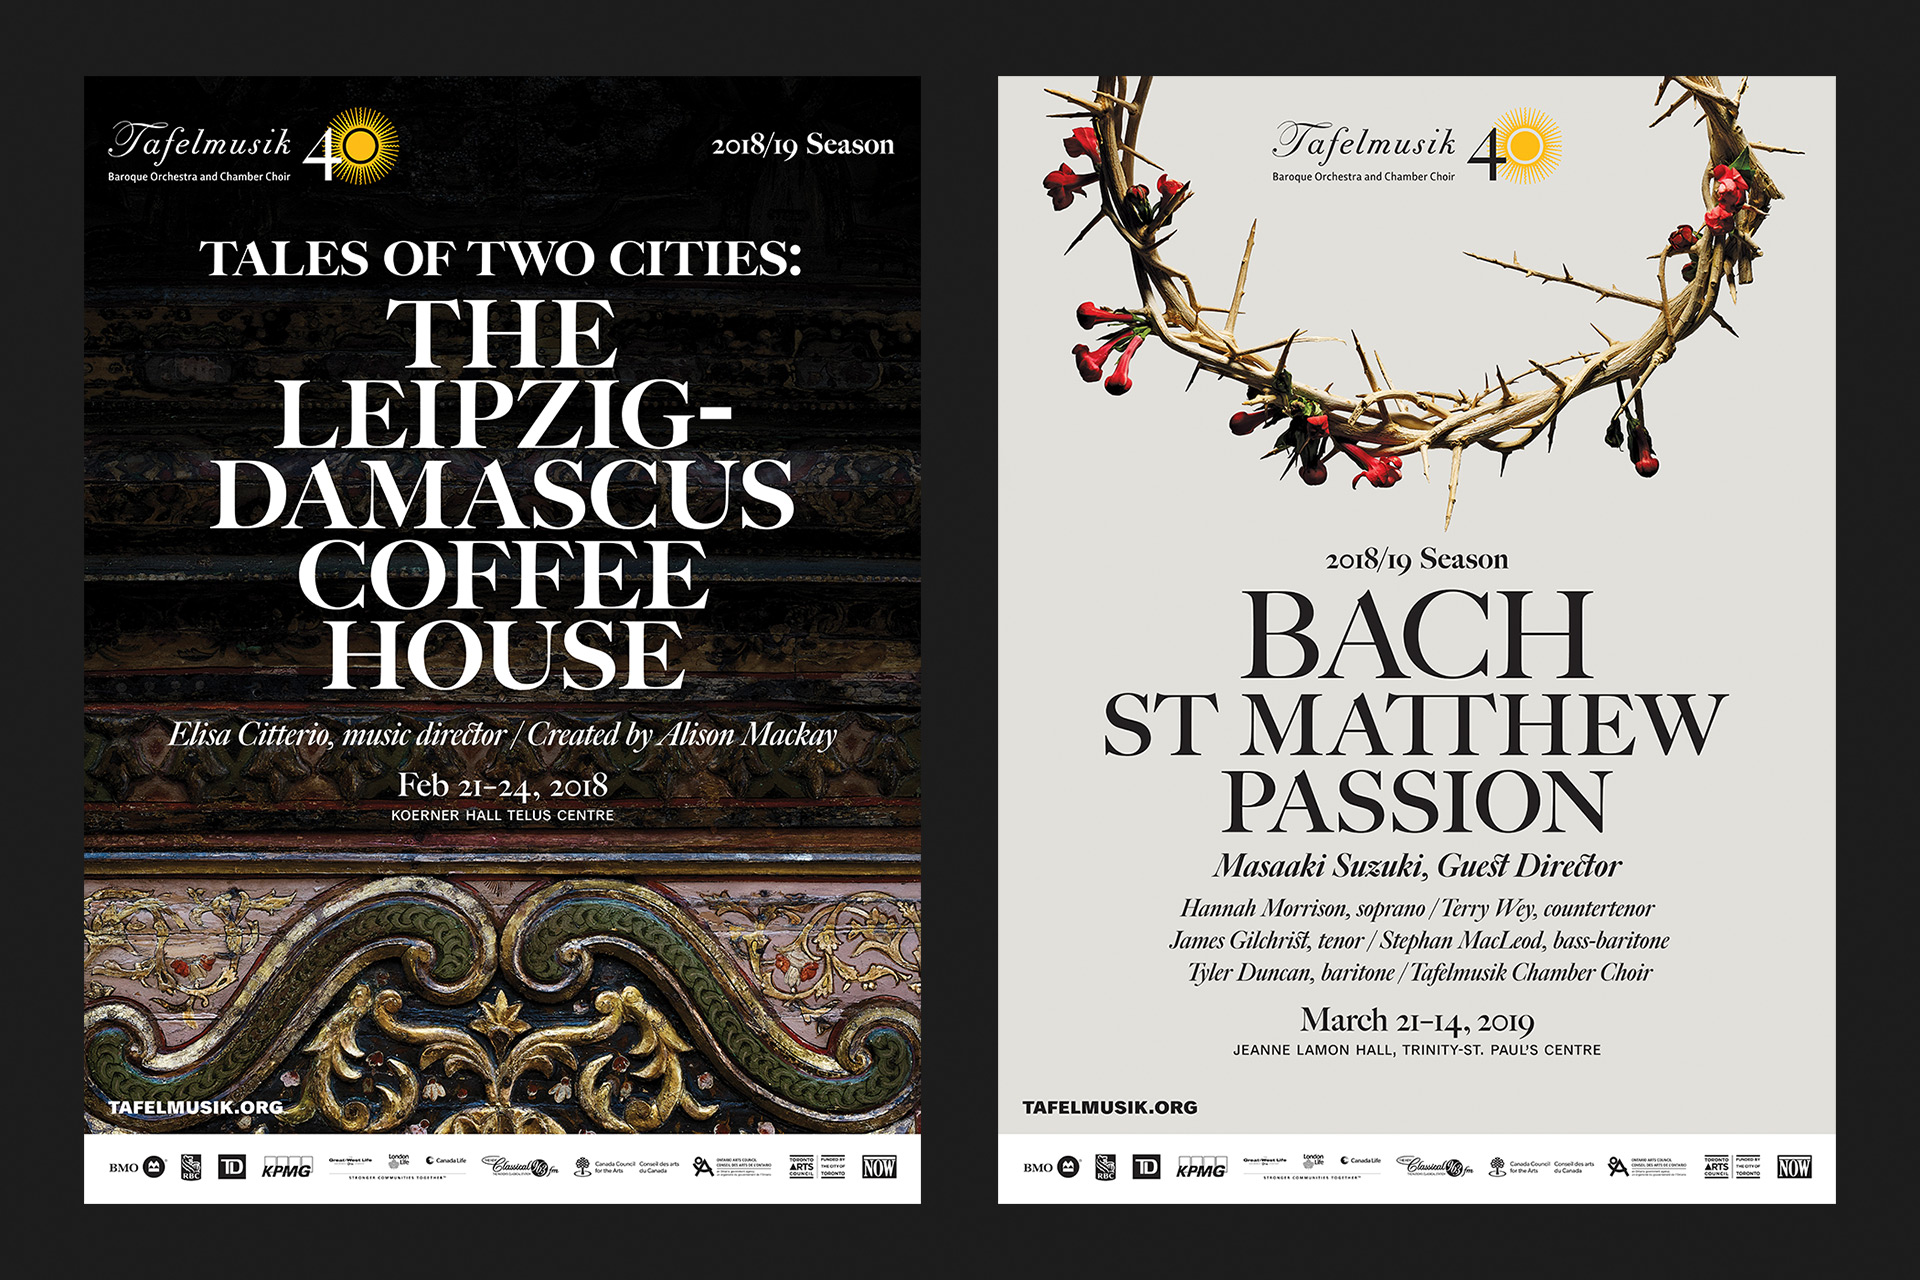 Tales of Two Cities: The Leipzig-Damascus Coffee House and Bach St Matthew Passion posters